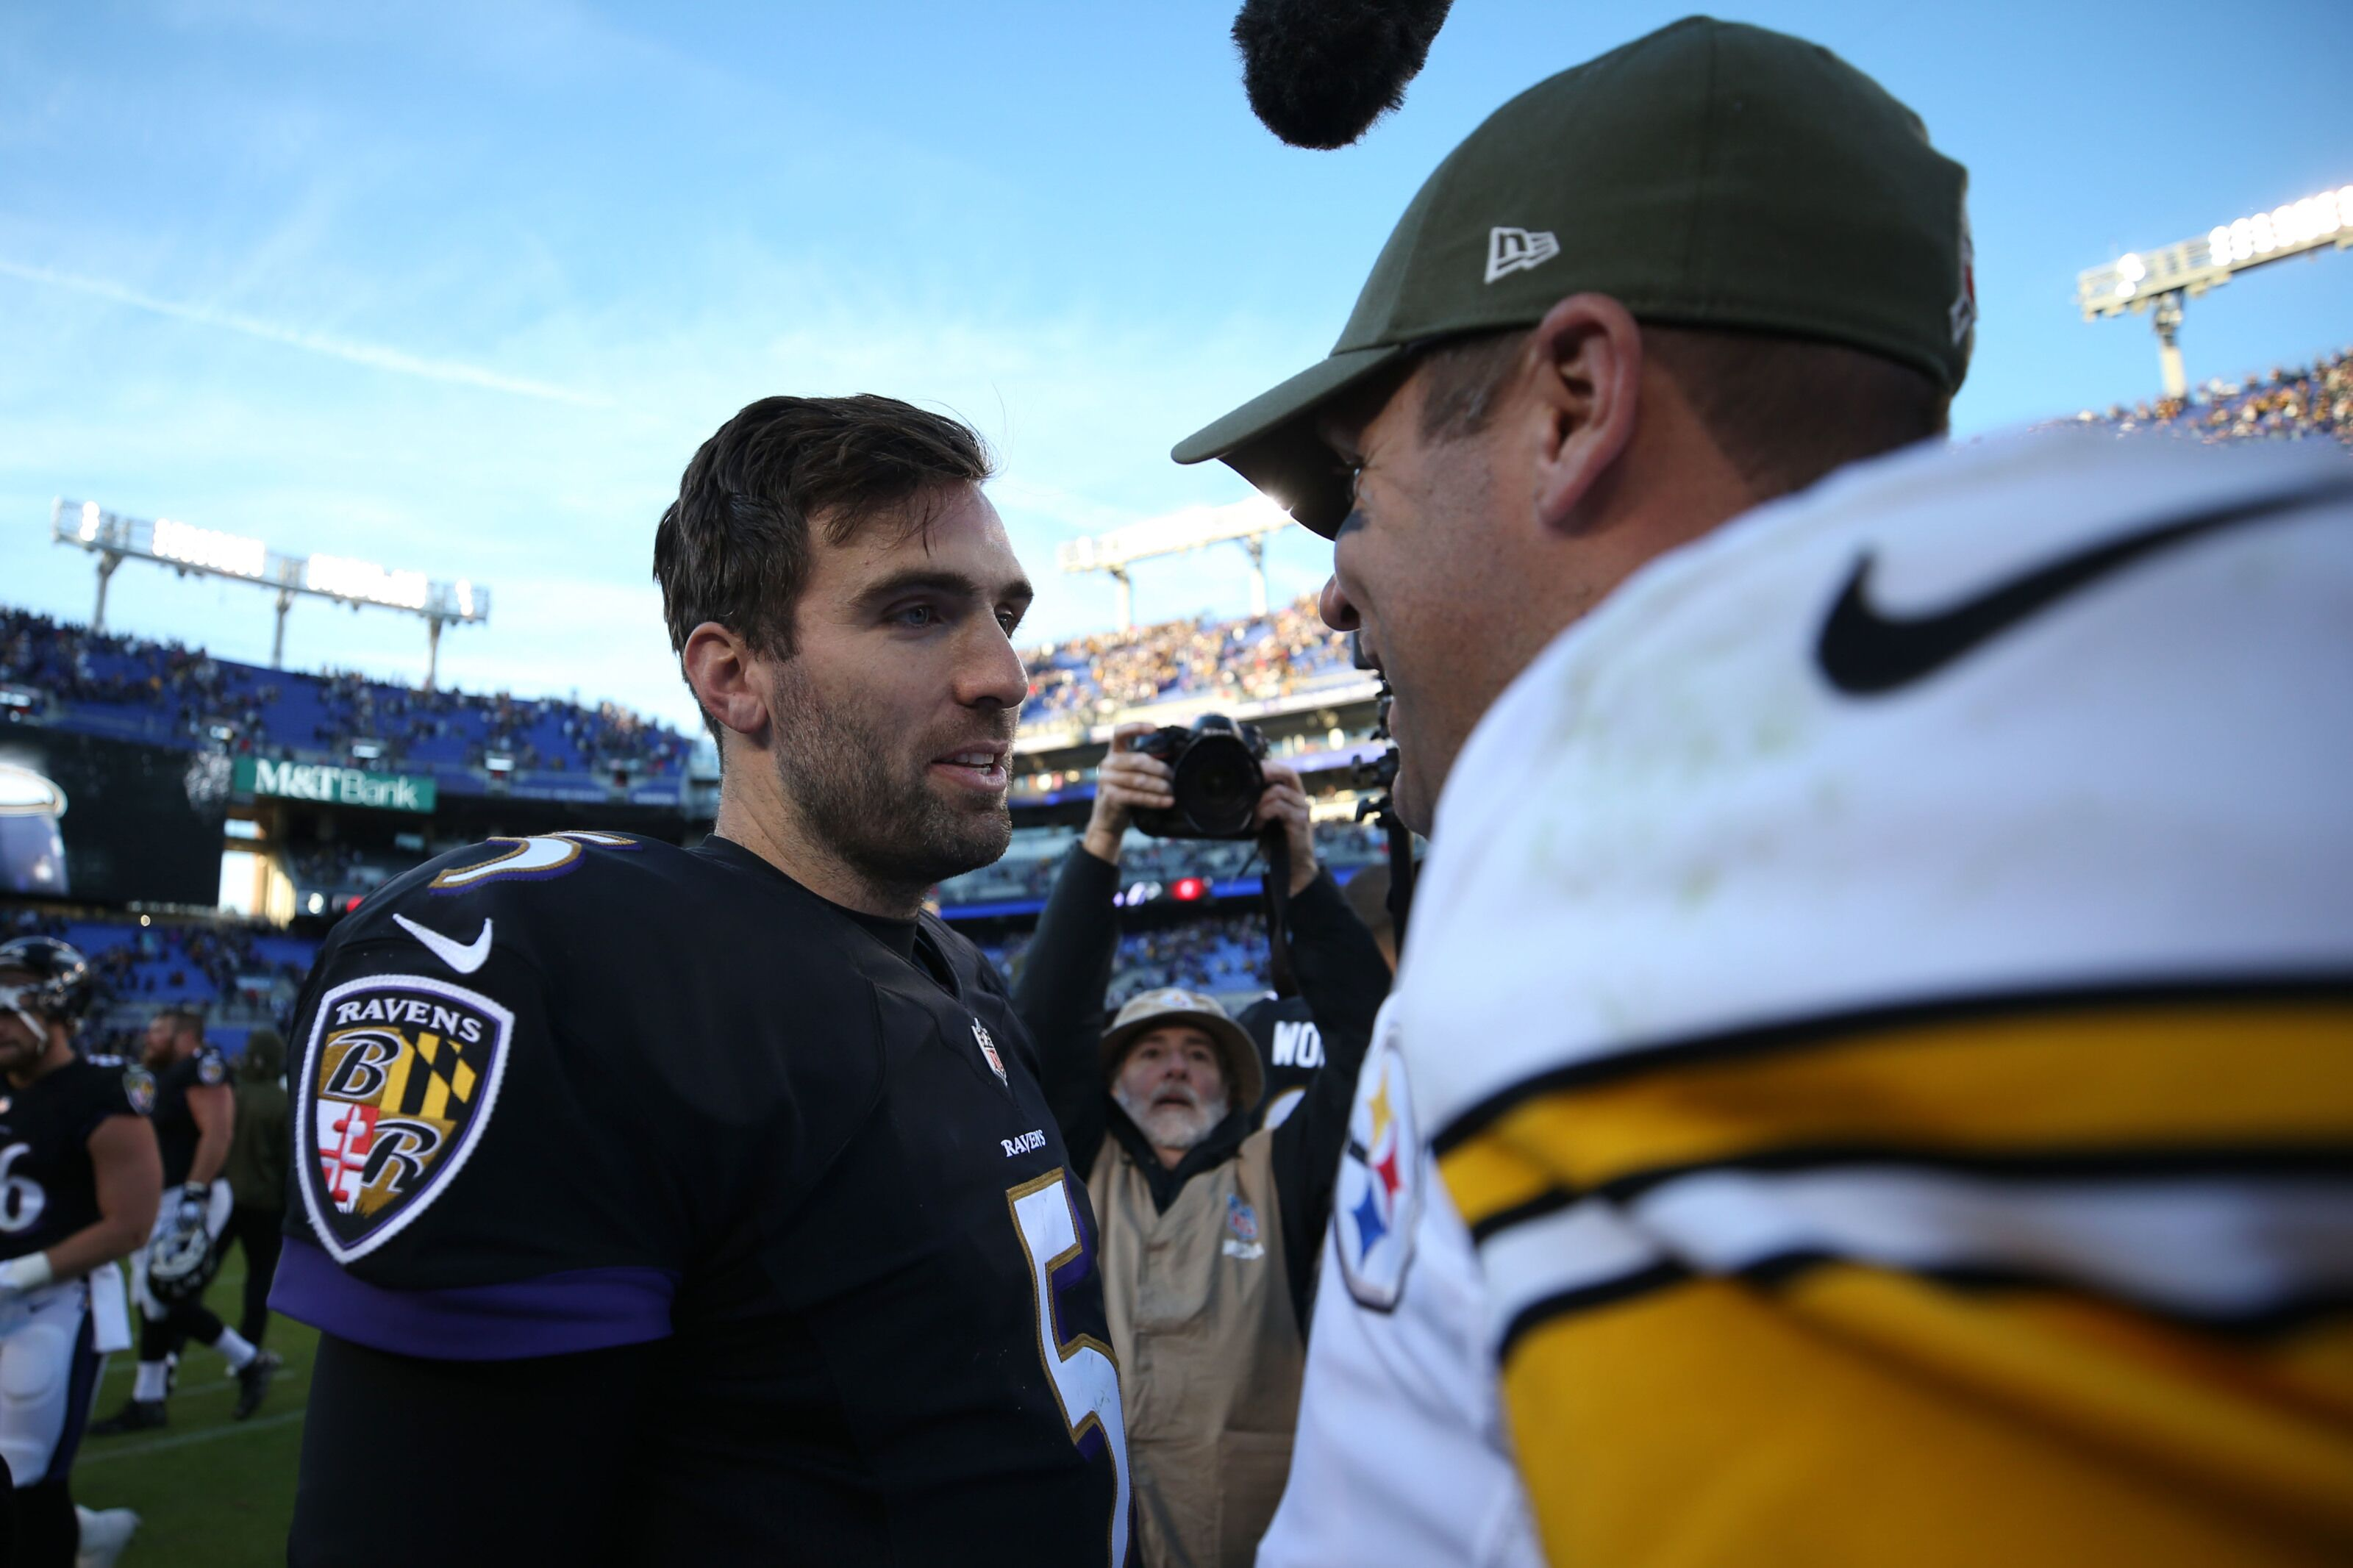 NFL Playoff Picture: Sorting the contenders and pretenders